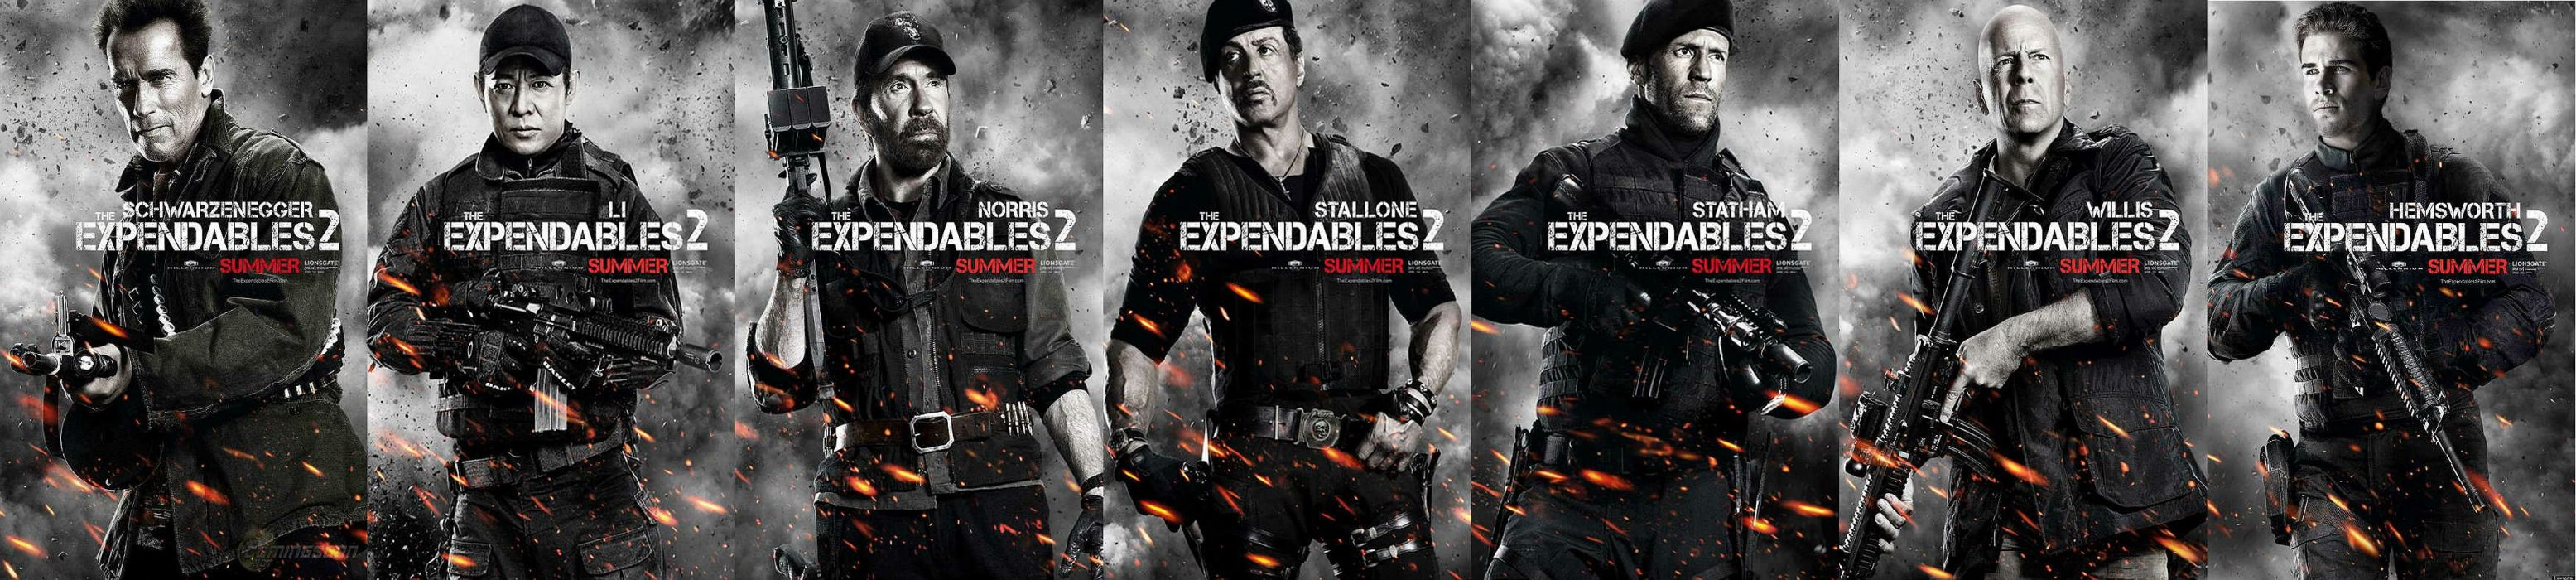 EXPENDABLES 2 action adventure thriller (23) wallpaper